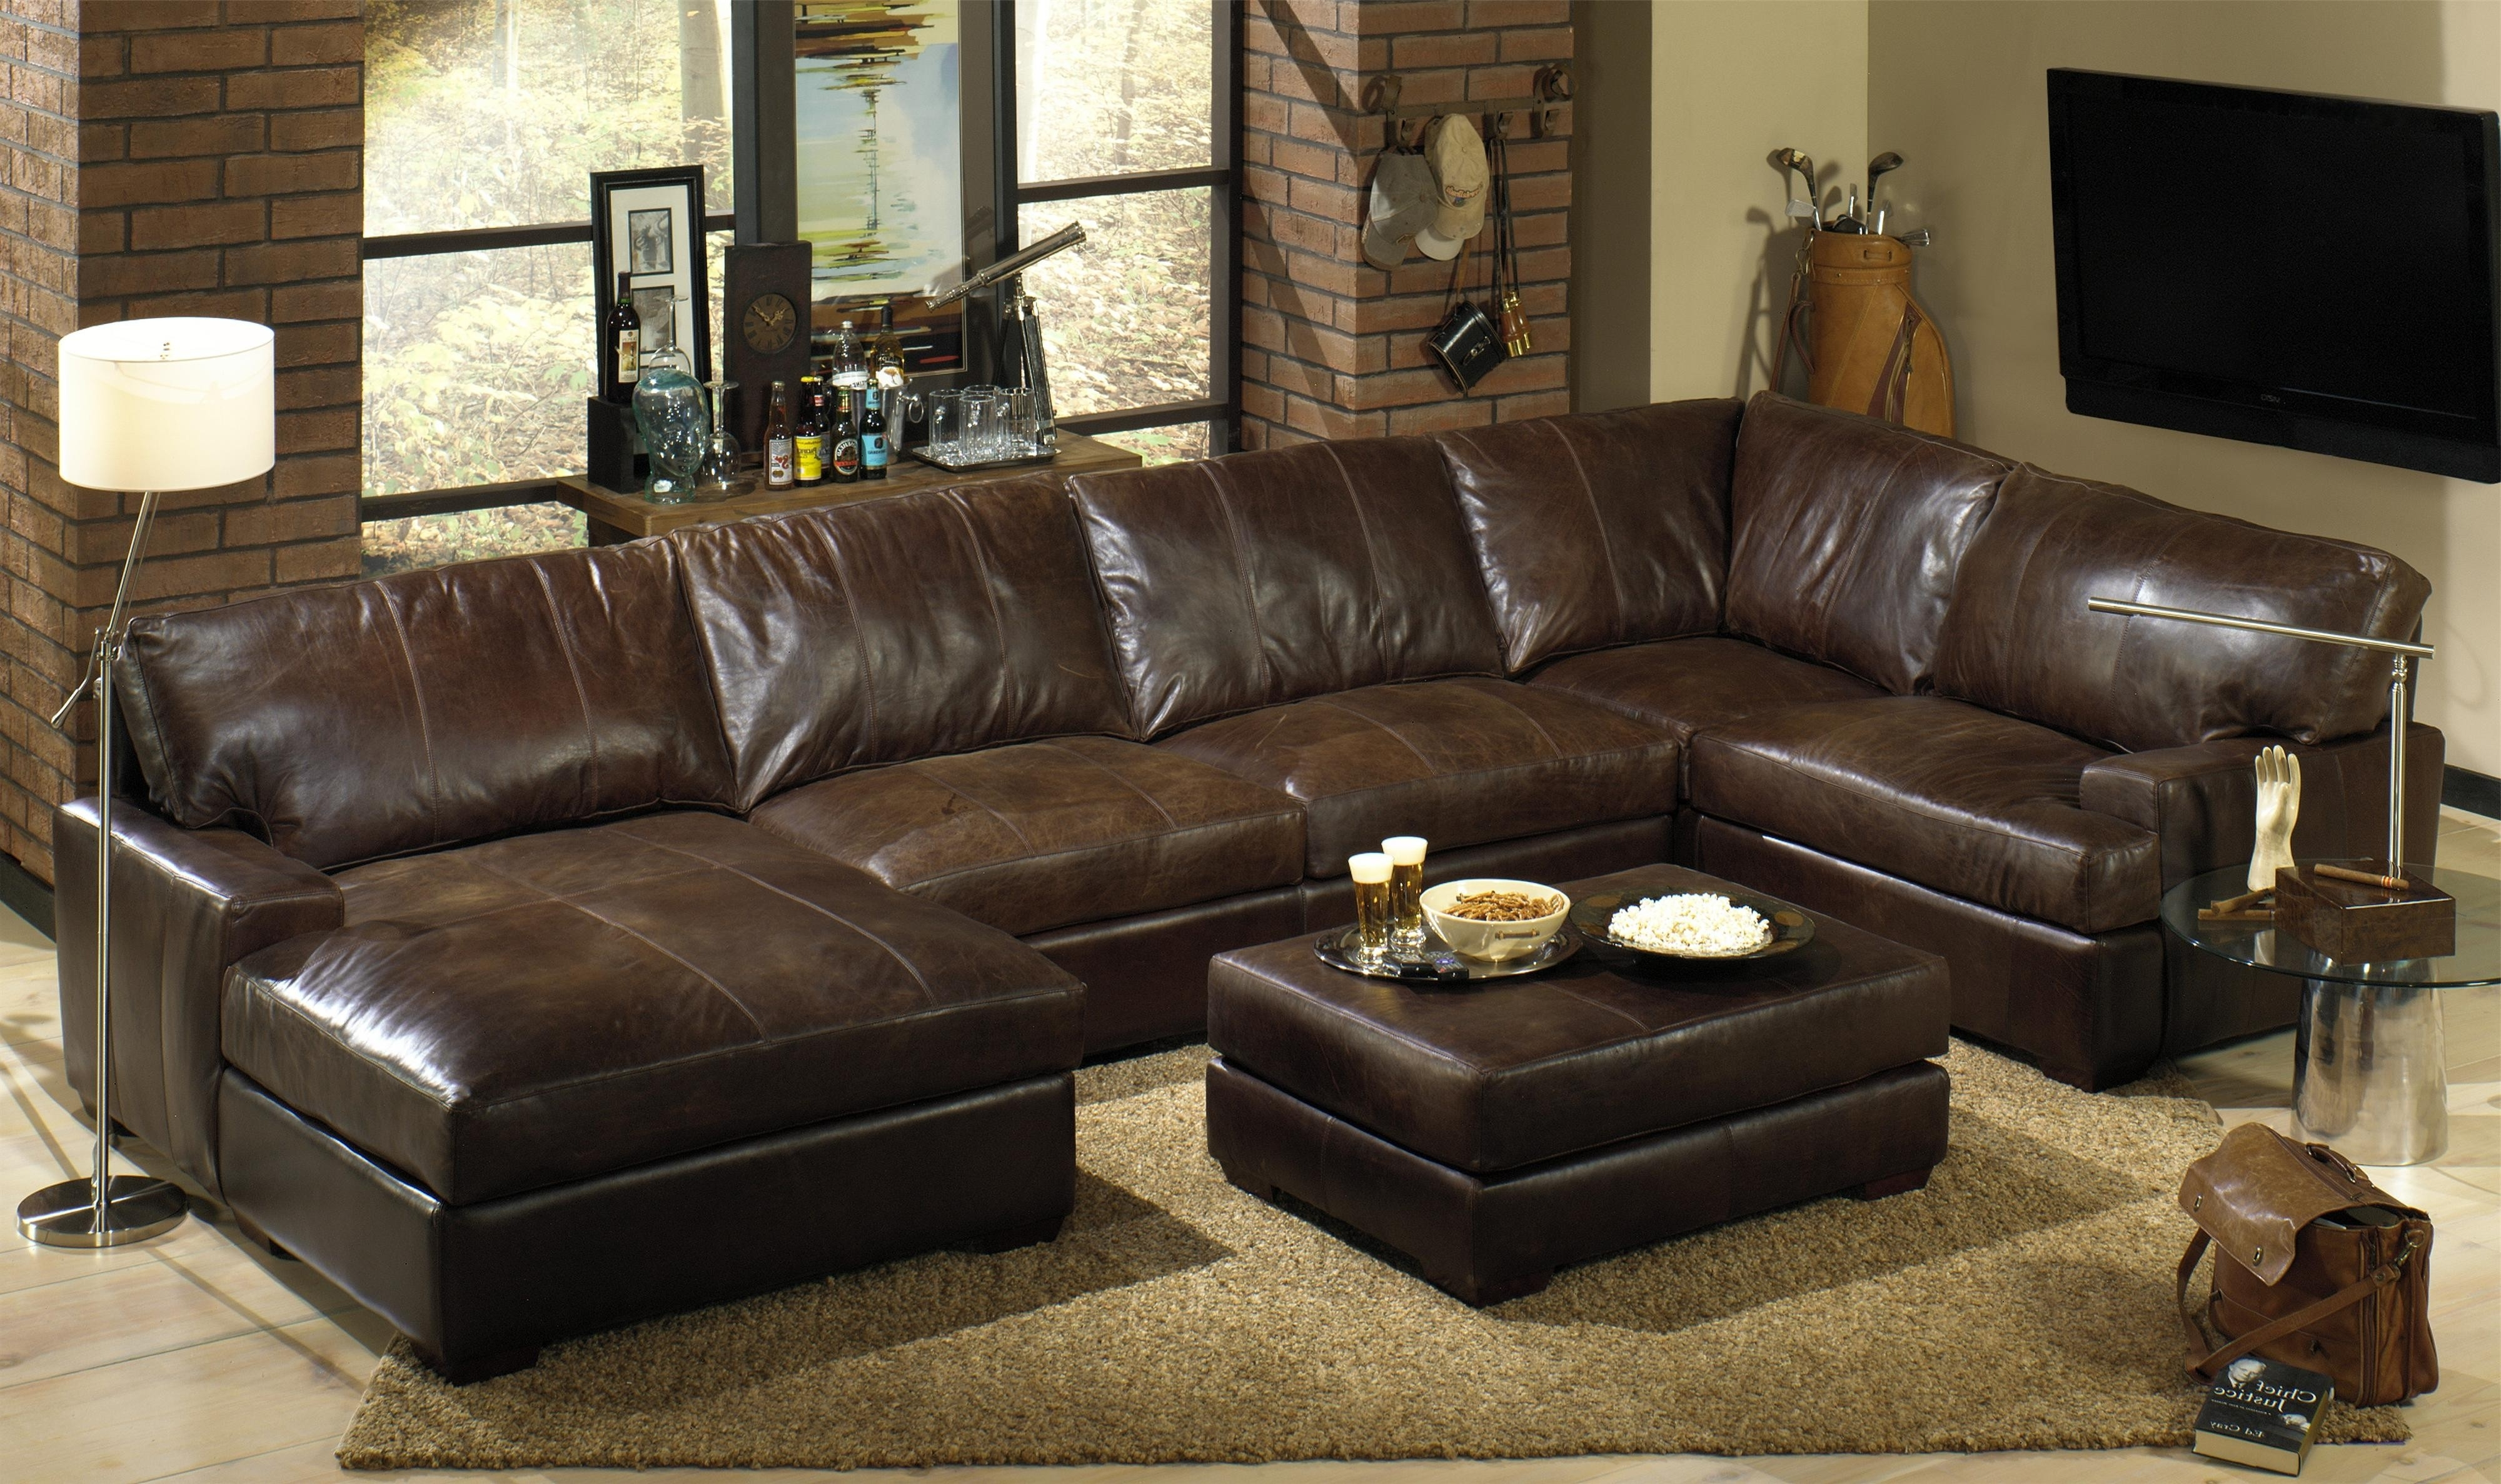 Preferred Leather Sectional Sofas Awesome 6 Piece Leather Sectional Sofa Pertaining To 6 Piece Leather Sectional Sofas (View 10 of 20)